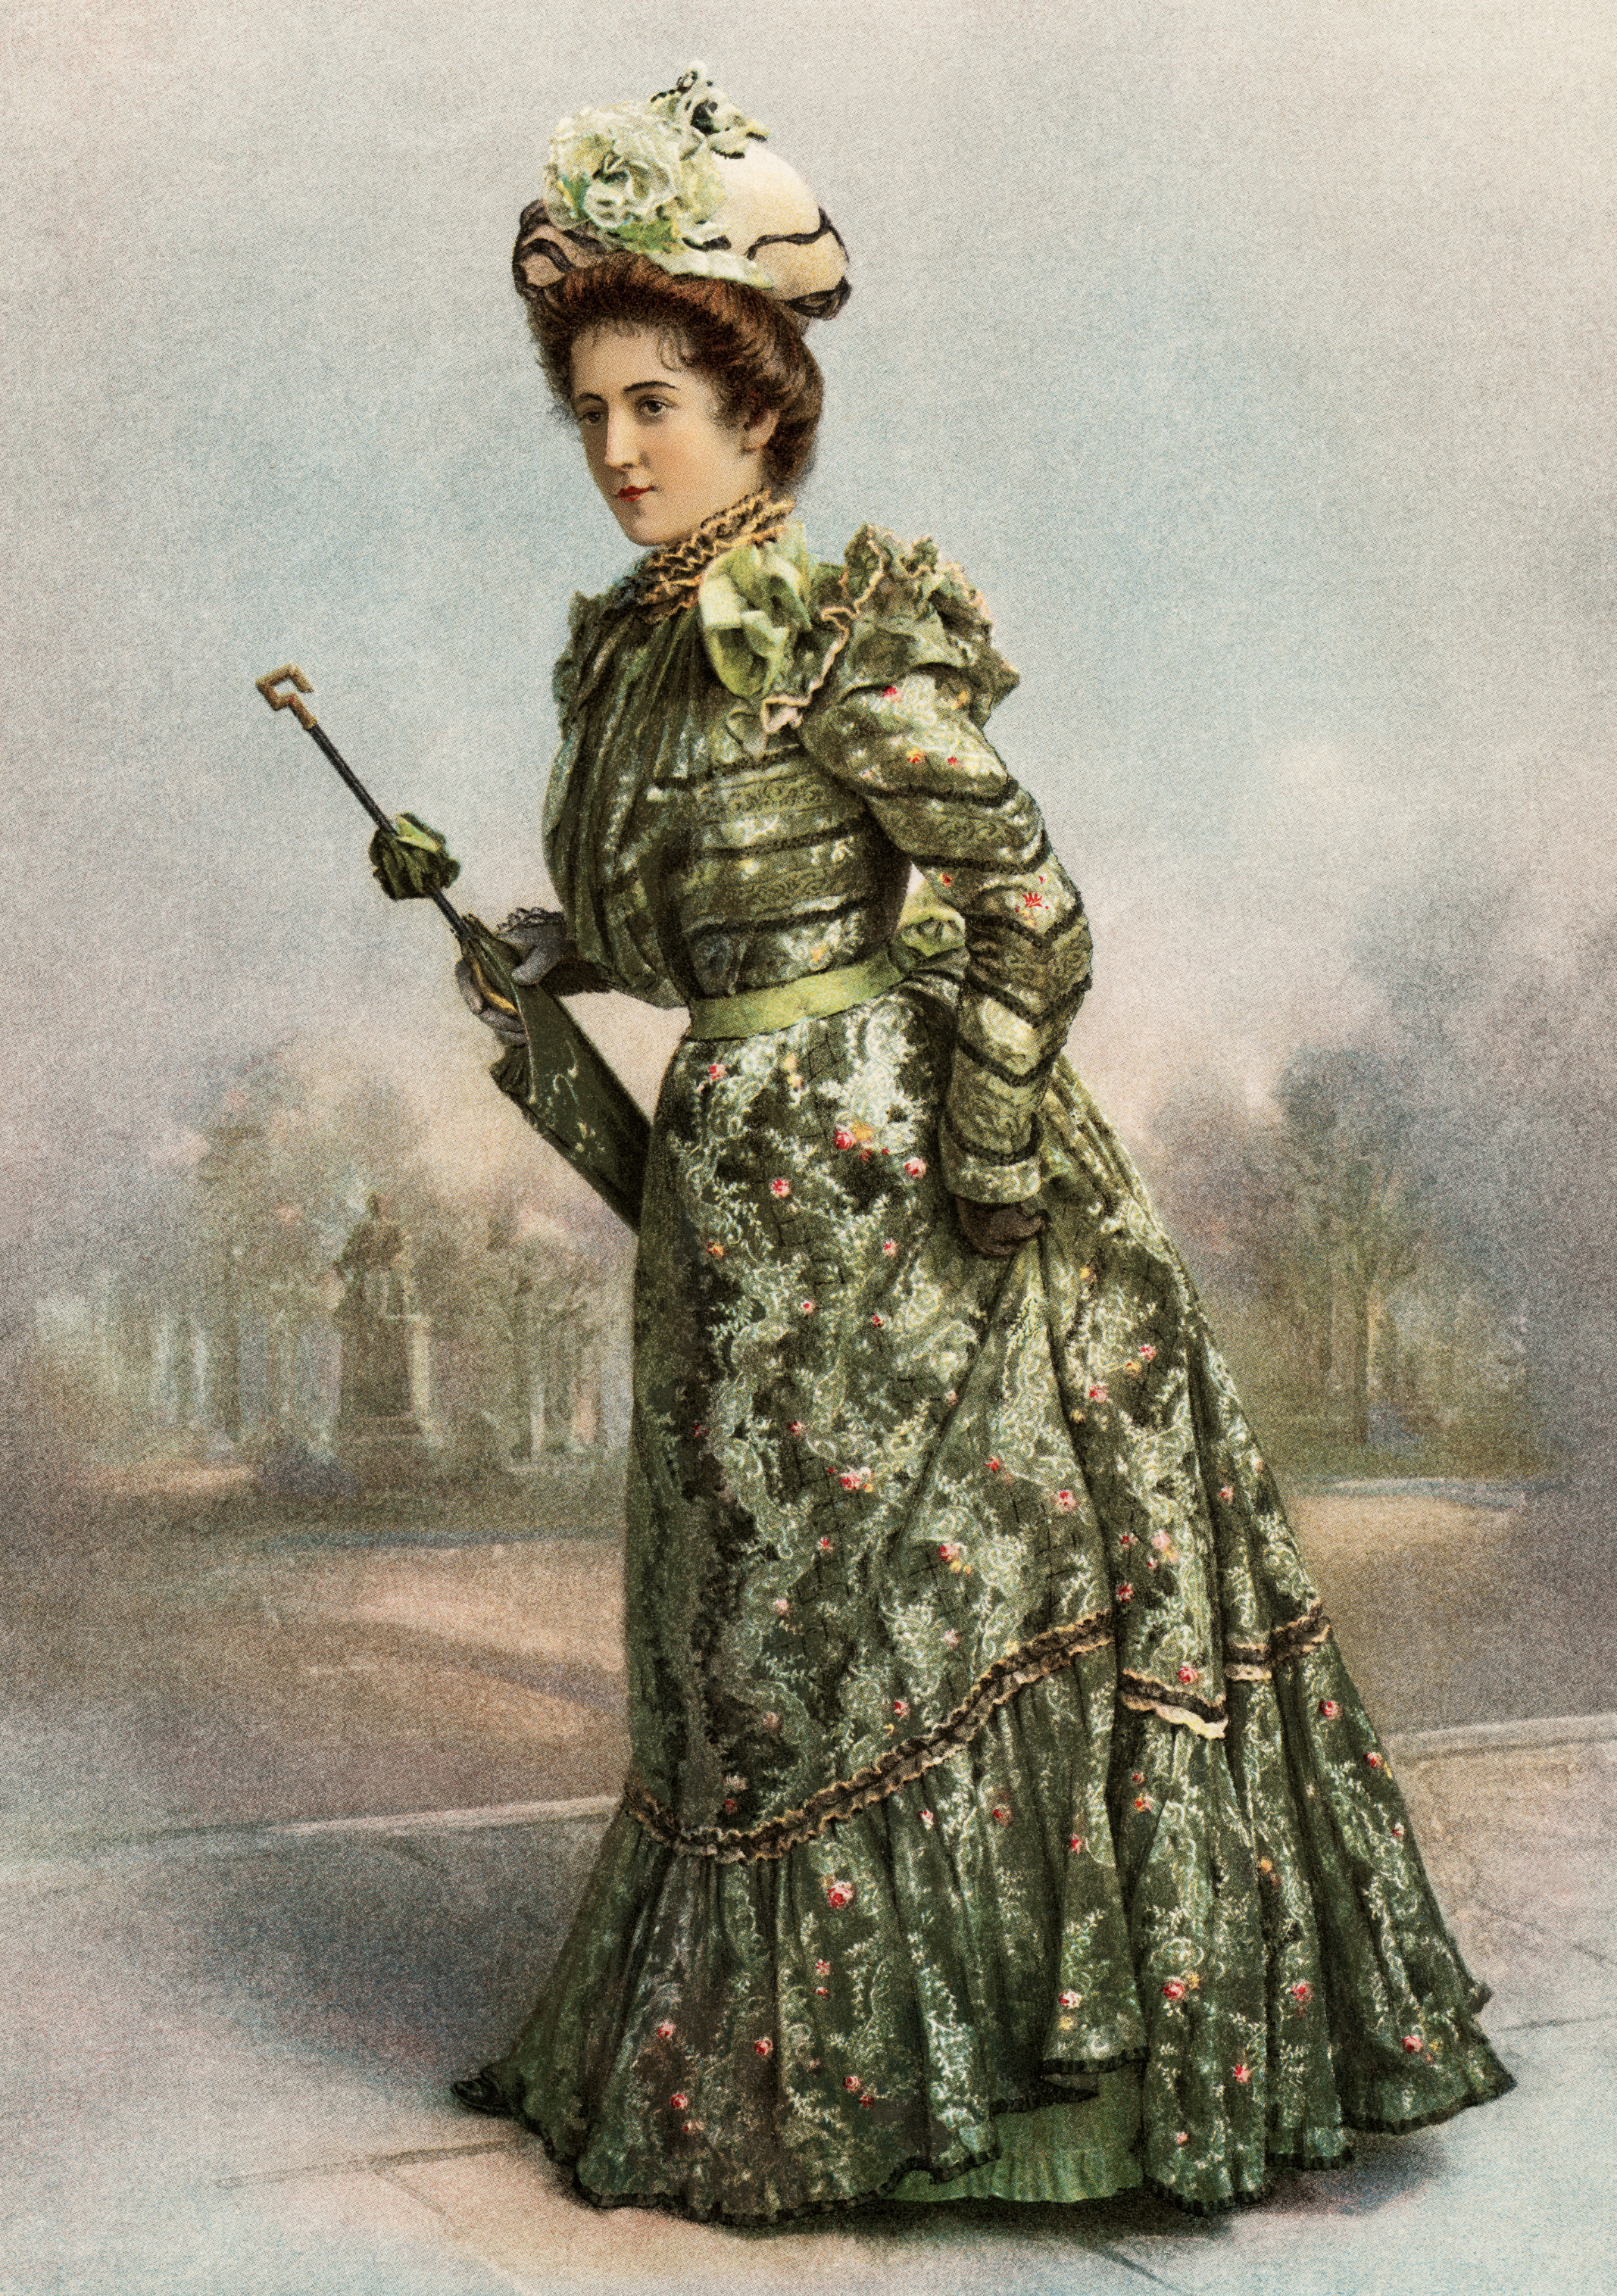 free digital image, free vintage clipart, victorian lady, victorian fashion image, fashion 1900, green victorian dress, dainty spring gown image, vintage fashion illustration, copyright free vintage images, vintage graphics for digital design, free printable, antique fashion picture